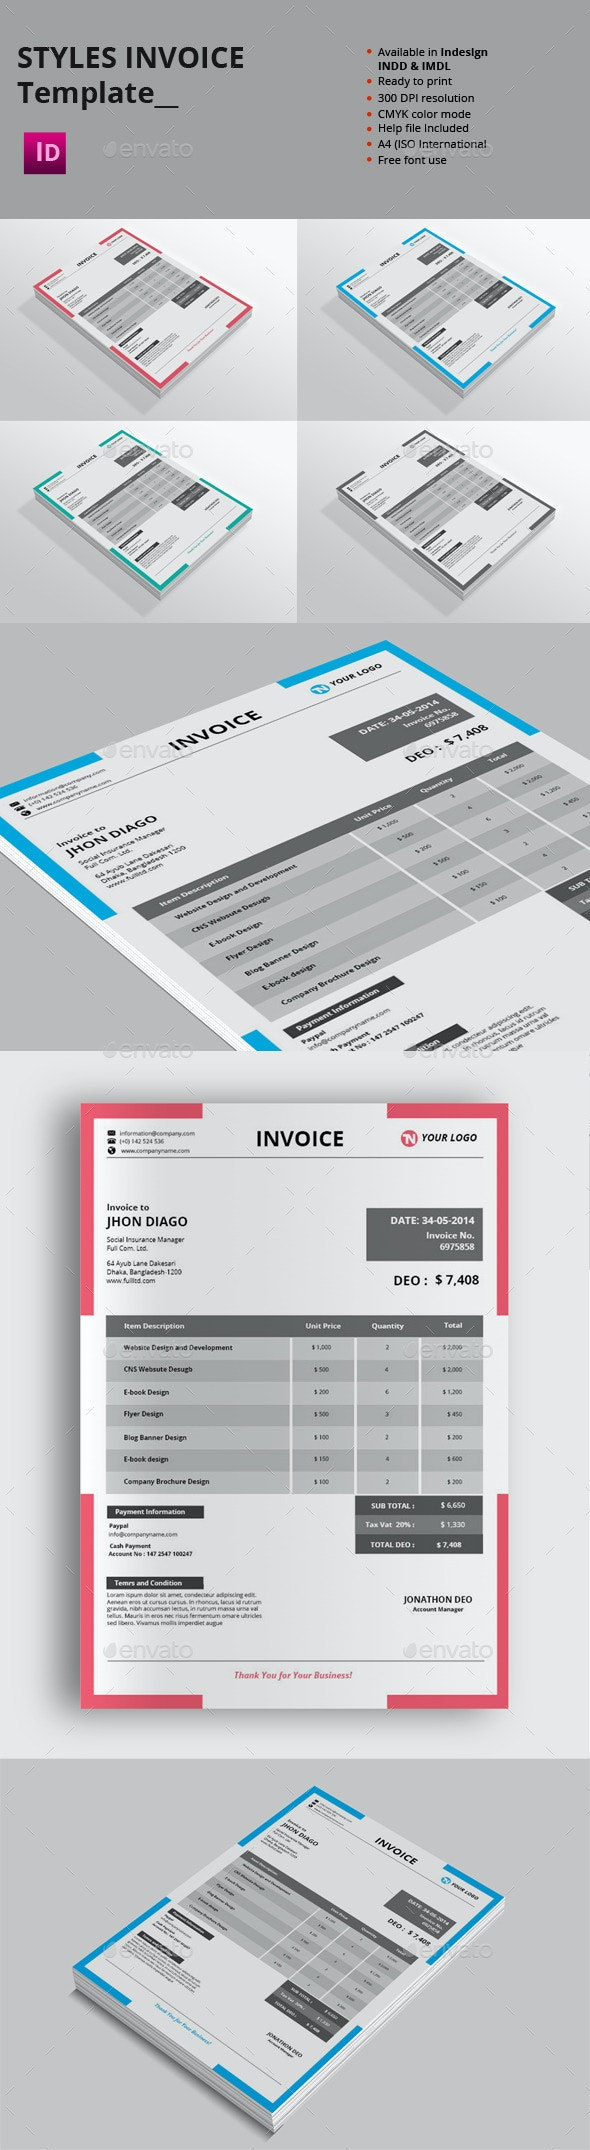 Styles Invoice Templates - Proposals & Invoices Stationery